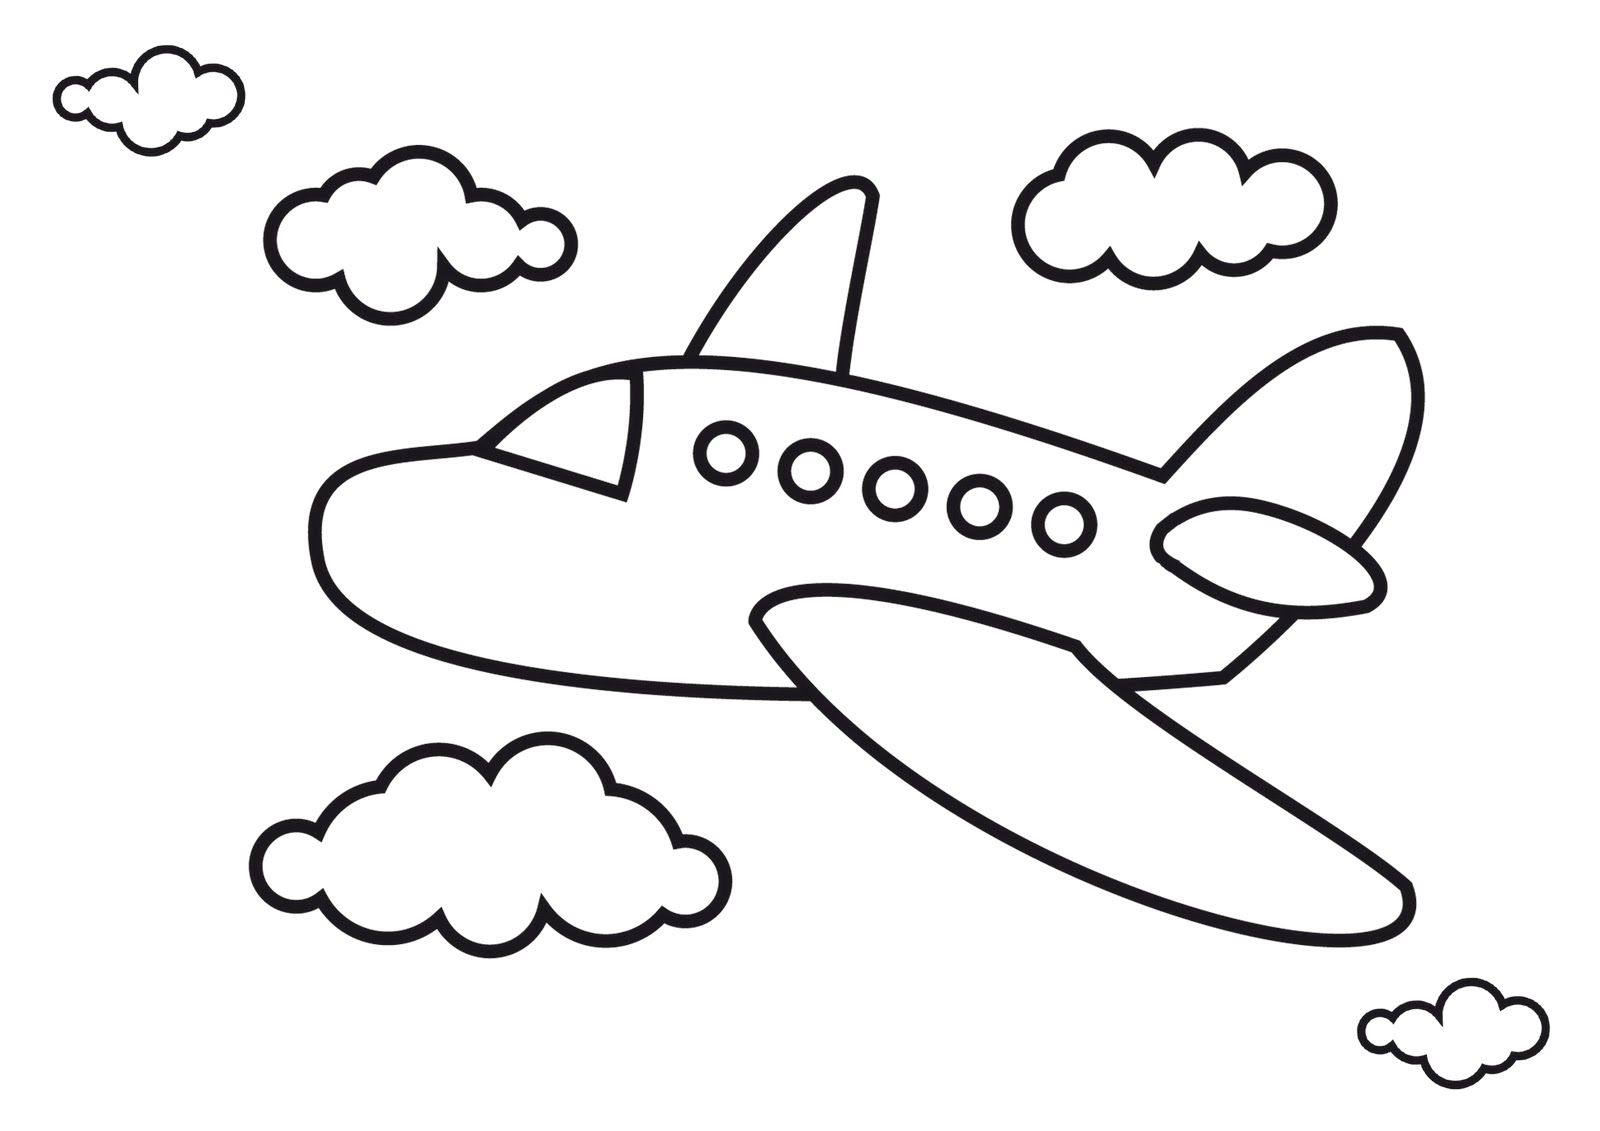 Pencil art drawing airplane coloring pages for kids coloring pages pictures imagixs